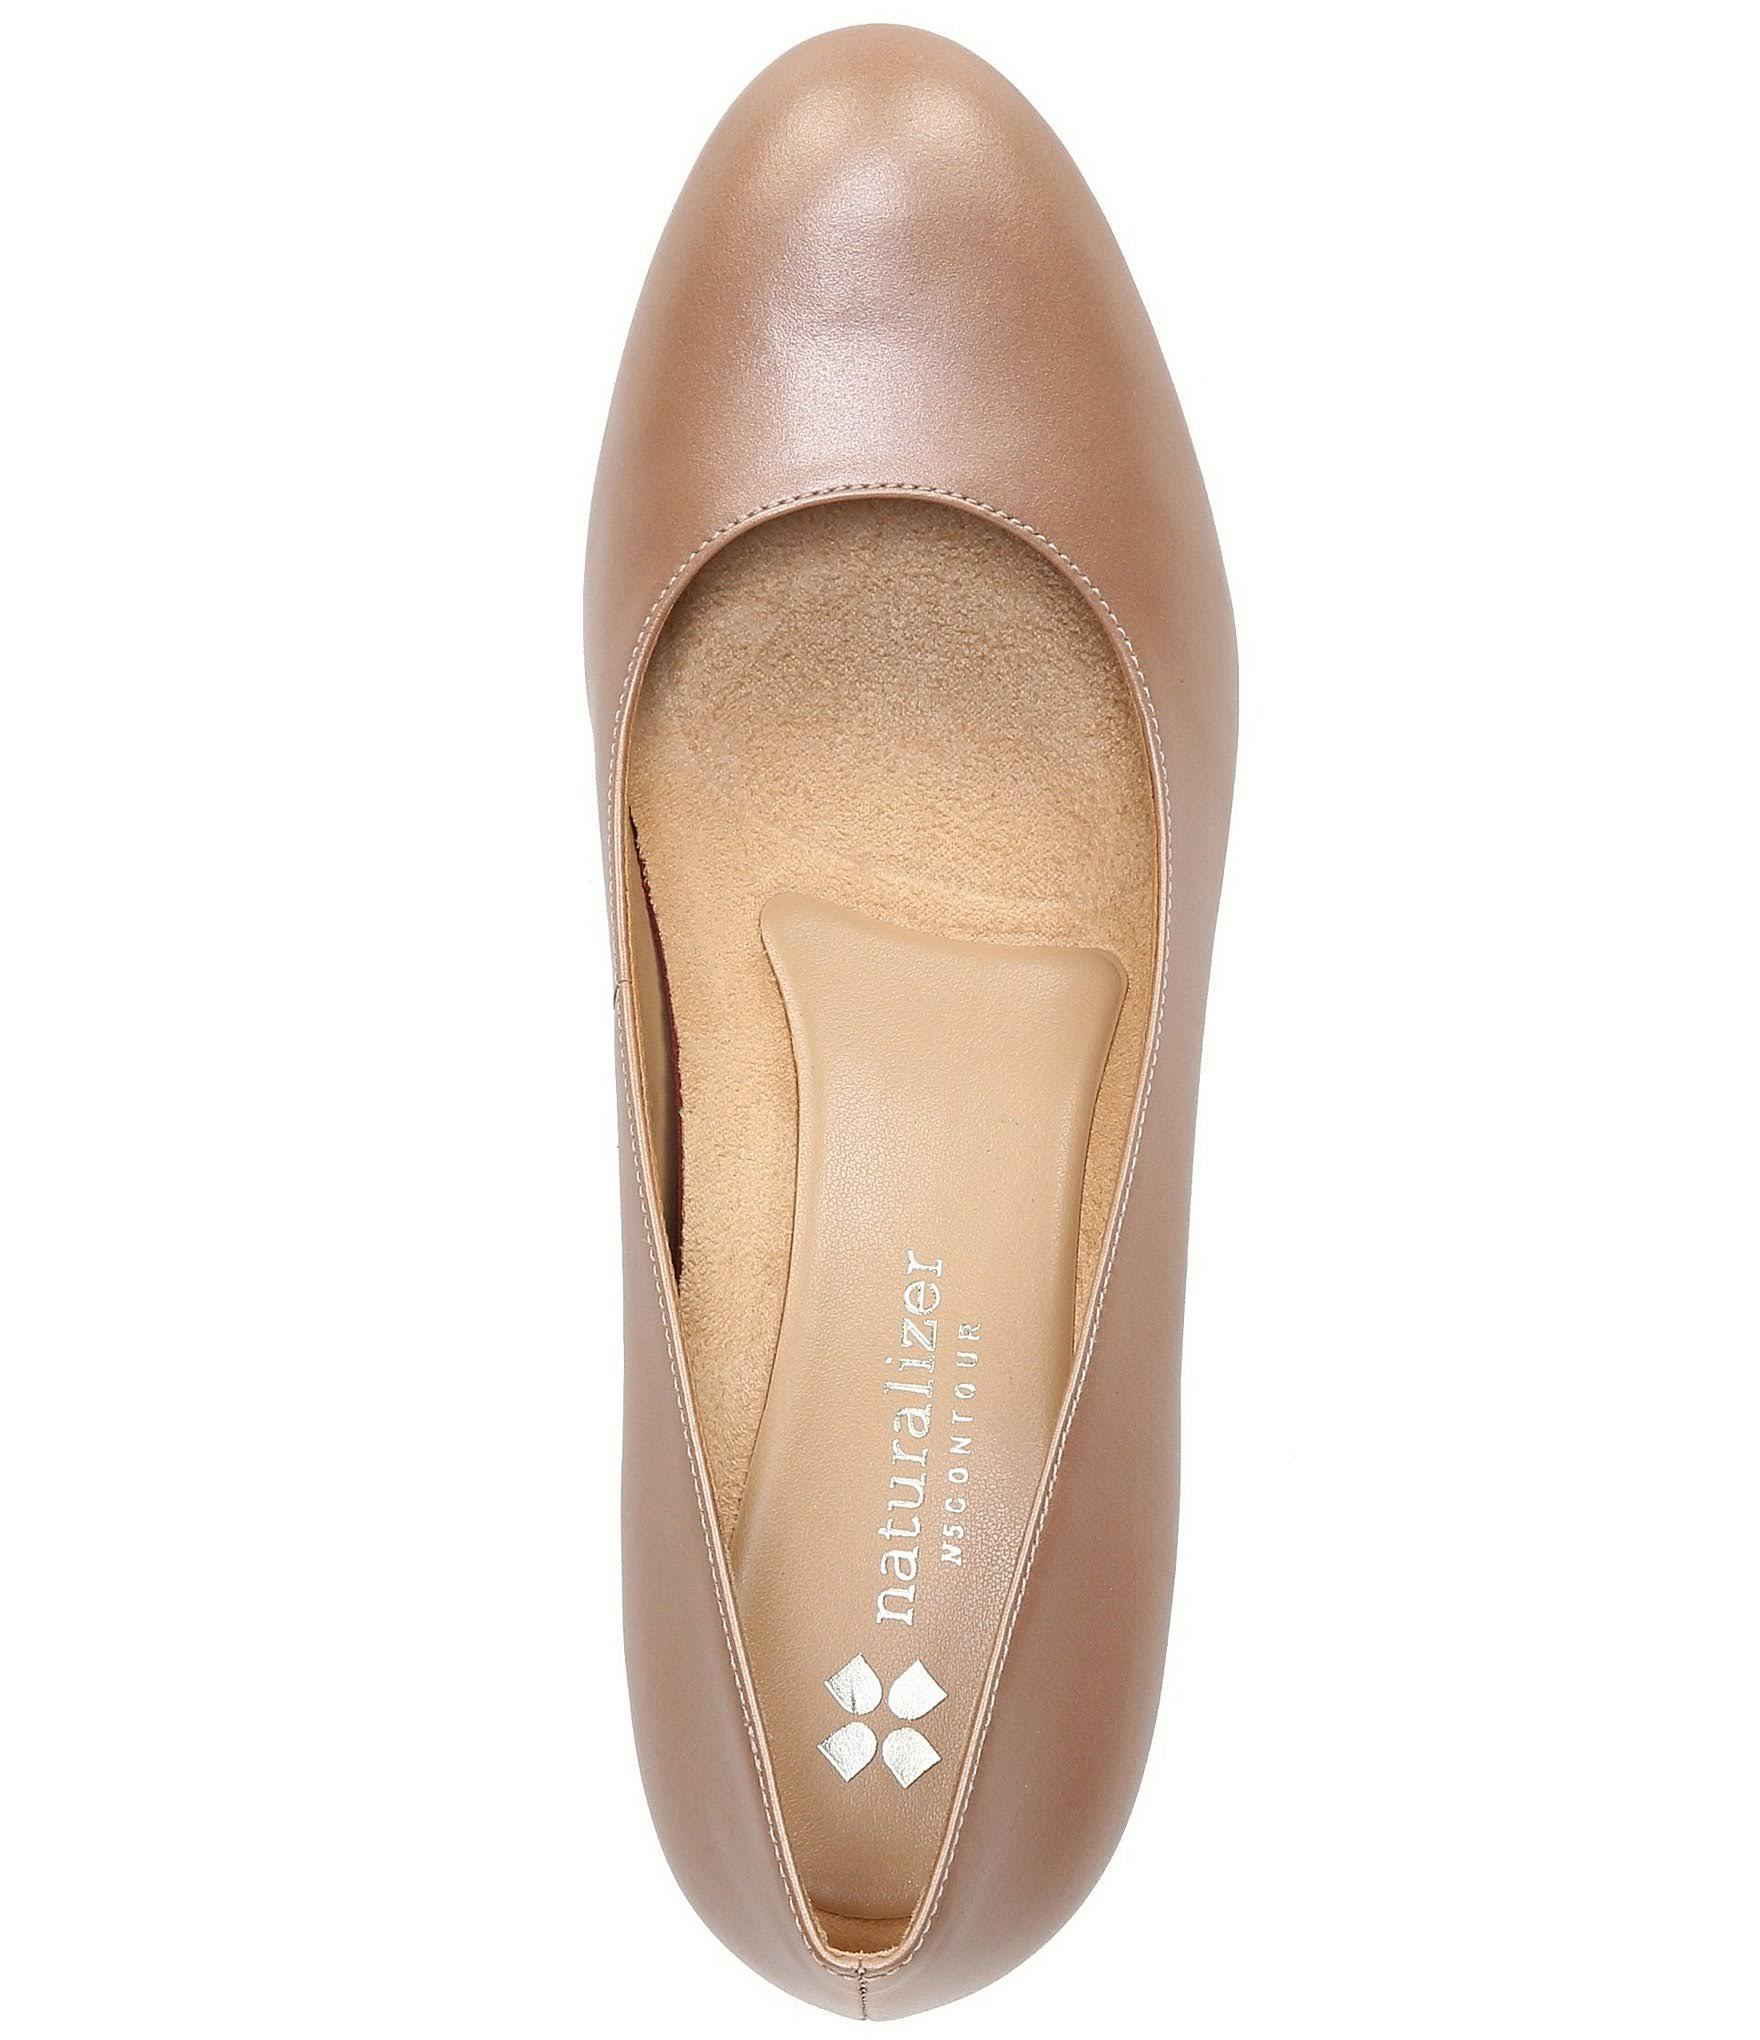 Naturalizer N Chai Dames Michelle 7 Pumps 5 R3c4jq5LSA